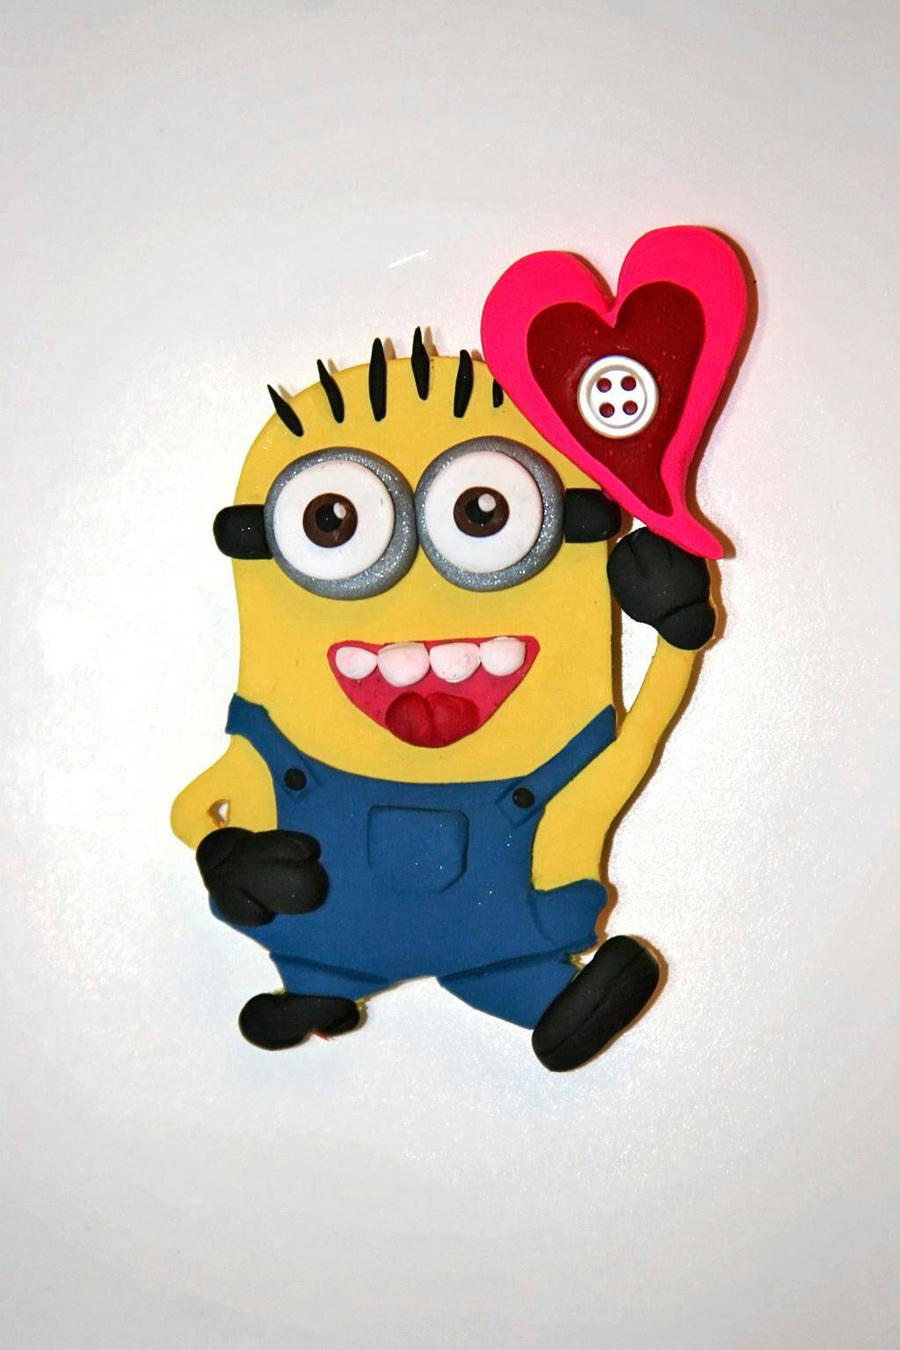 Polymer Clay Minion Valentineu0027s Magnet By Logazorcreative Polymer Clay Minion  Valentineu0027s Magnet By Logazorcreative